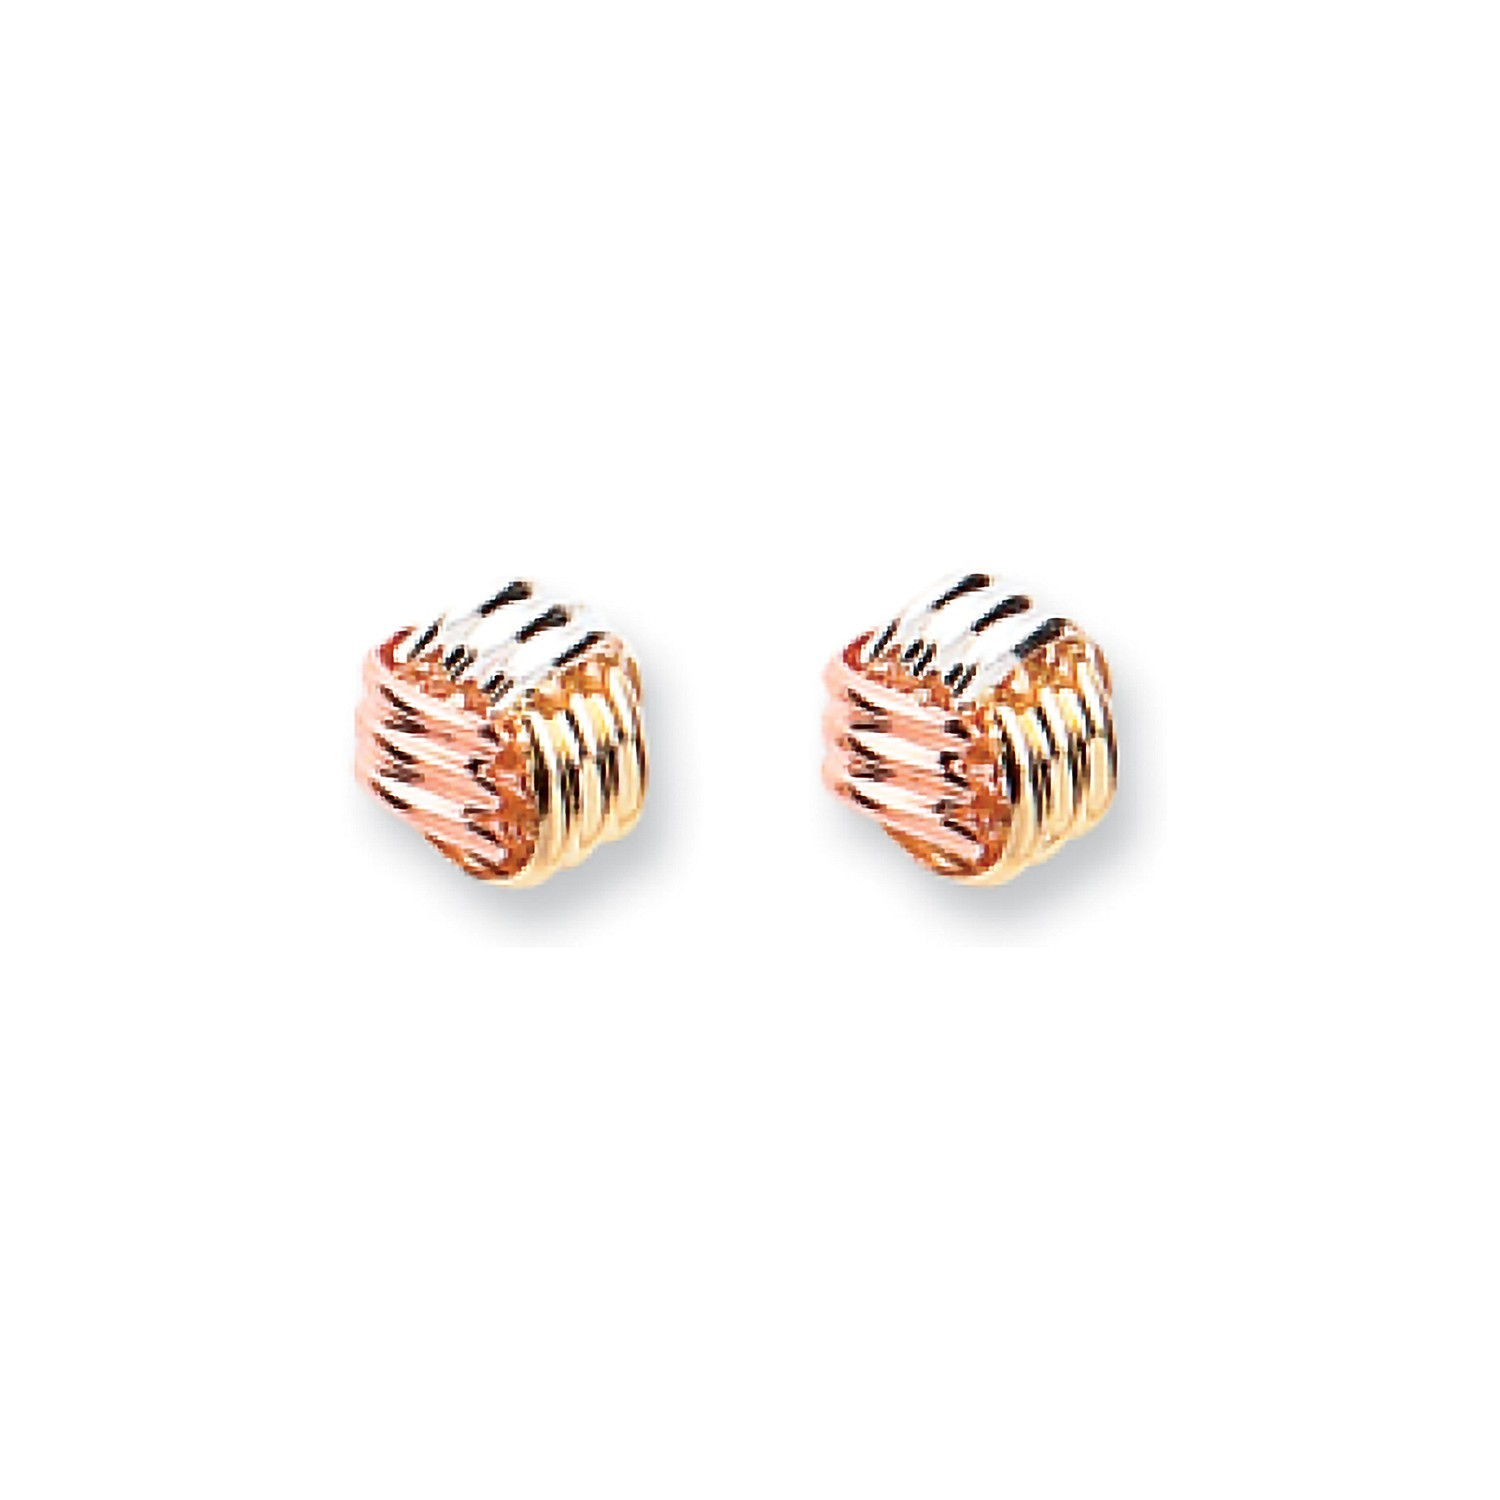 9ct Y W & R/G Fancy Knot Studs